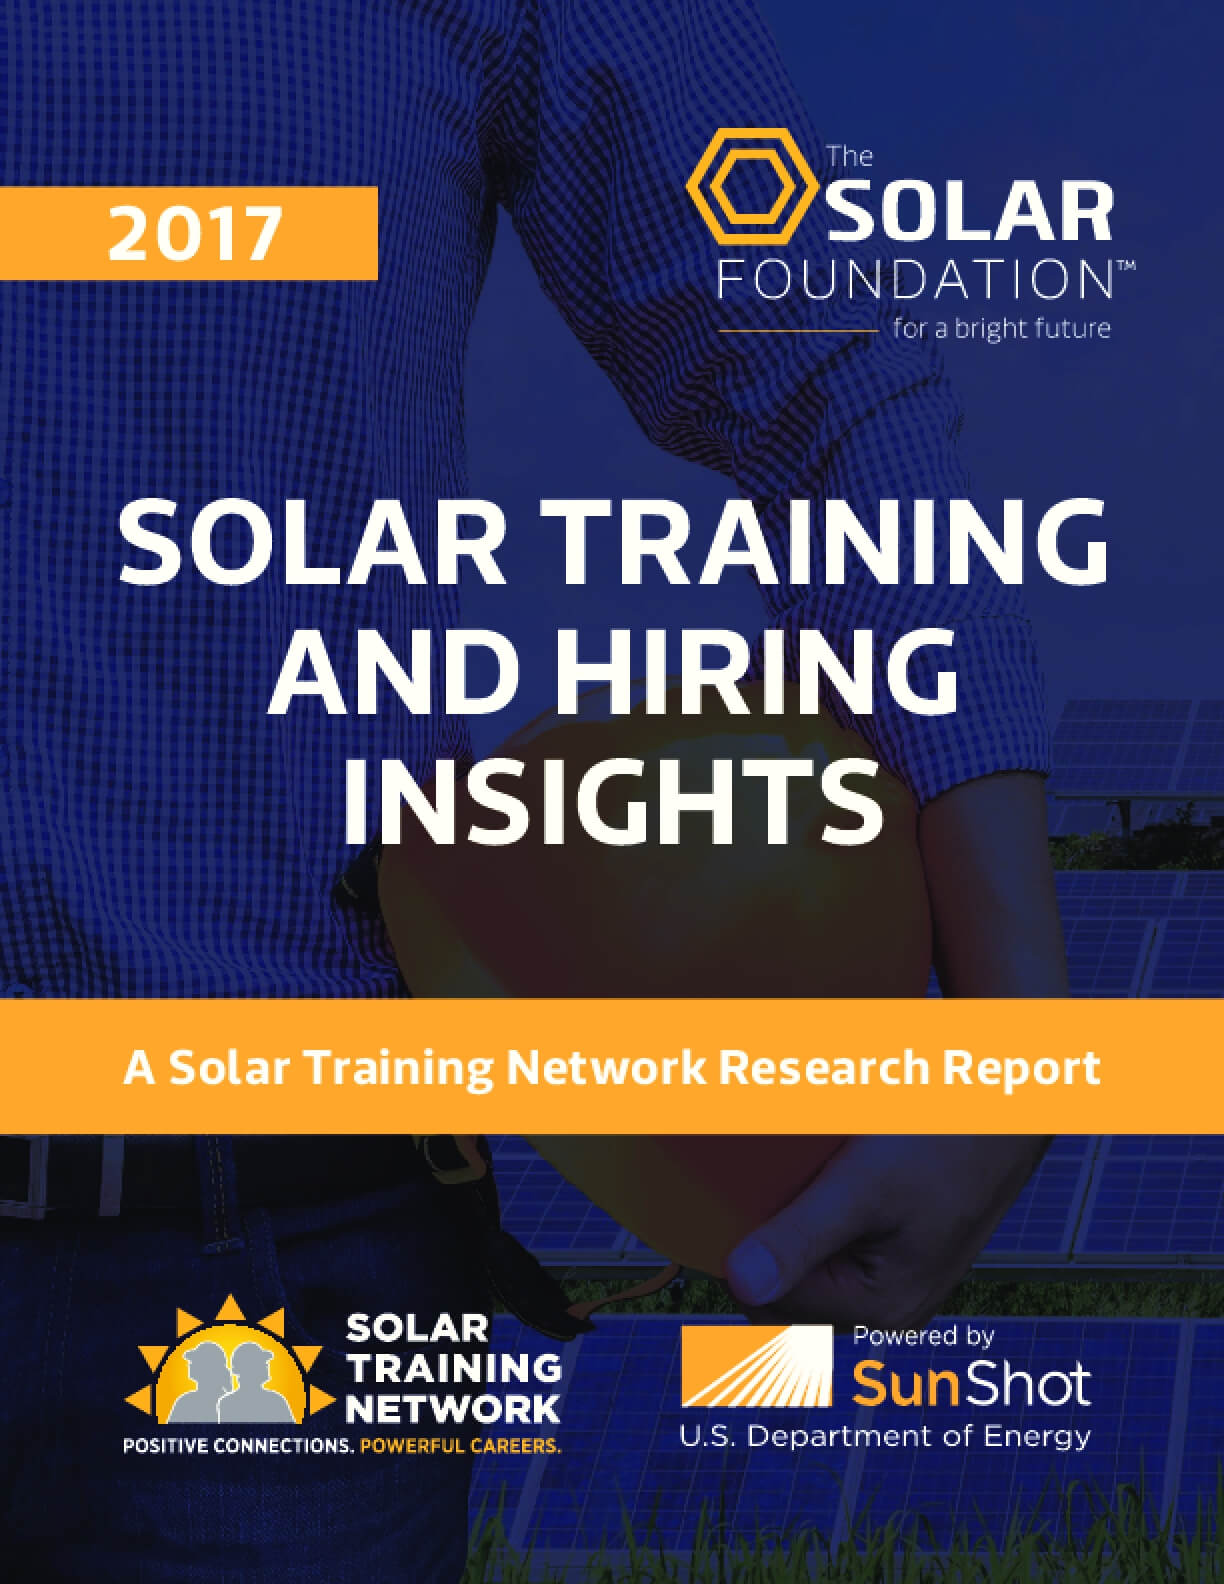 Solar Training and Hiring Insights